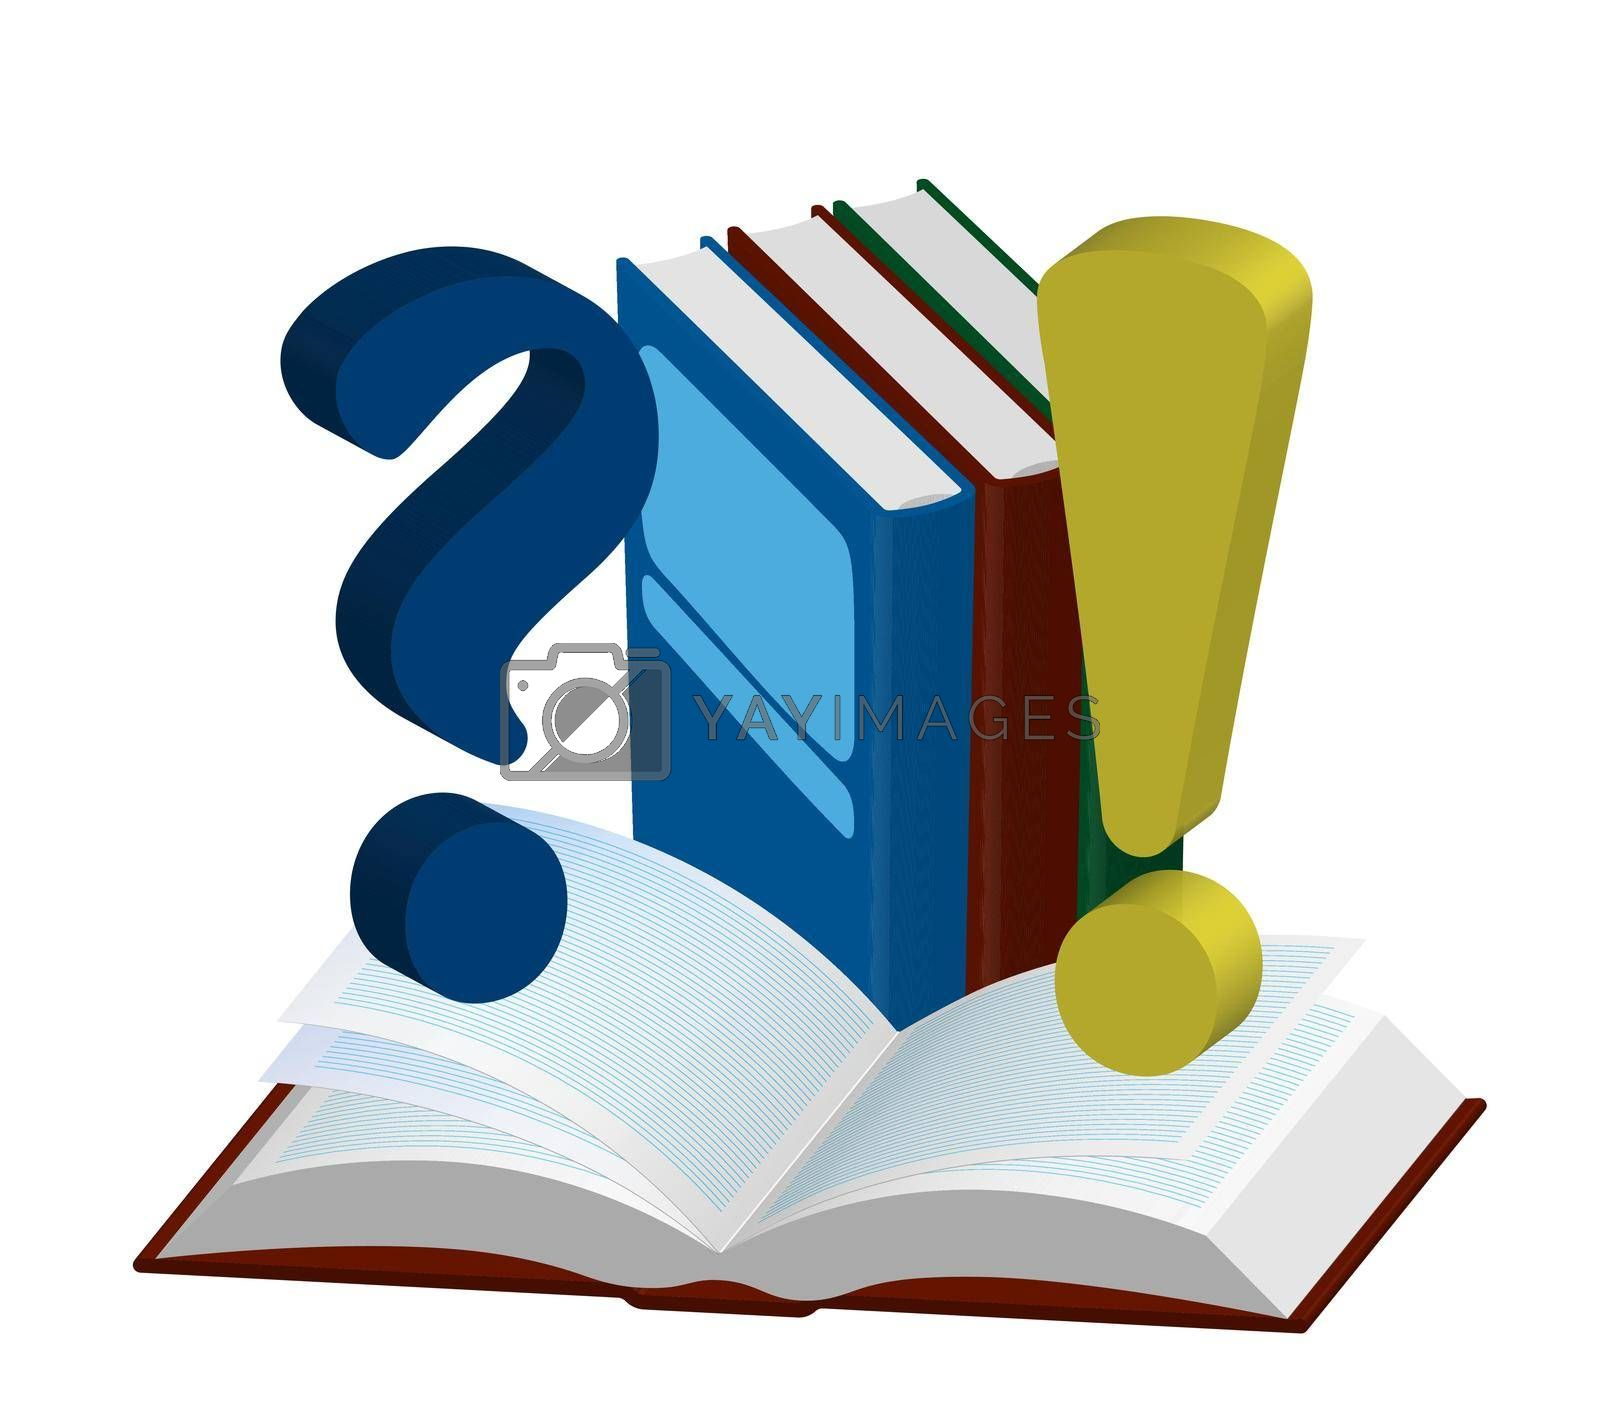 School 3D illustration, icon. Open and closed isometric books with question and exclamation marks. Template or layout for design. Isolated vector on white background